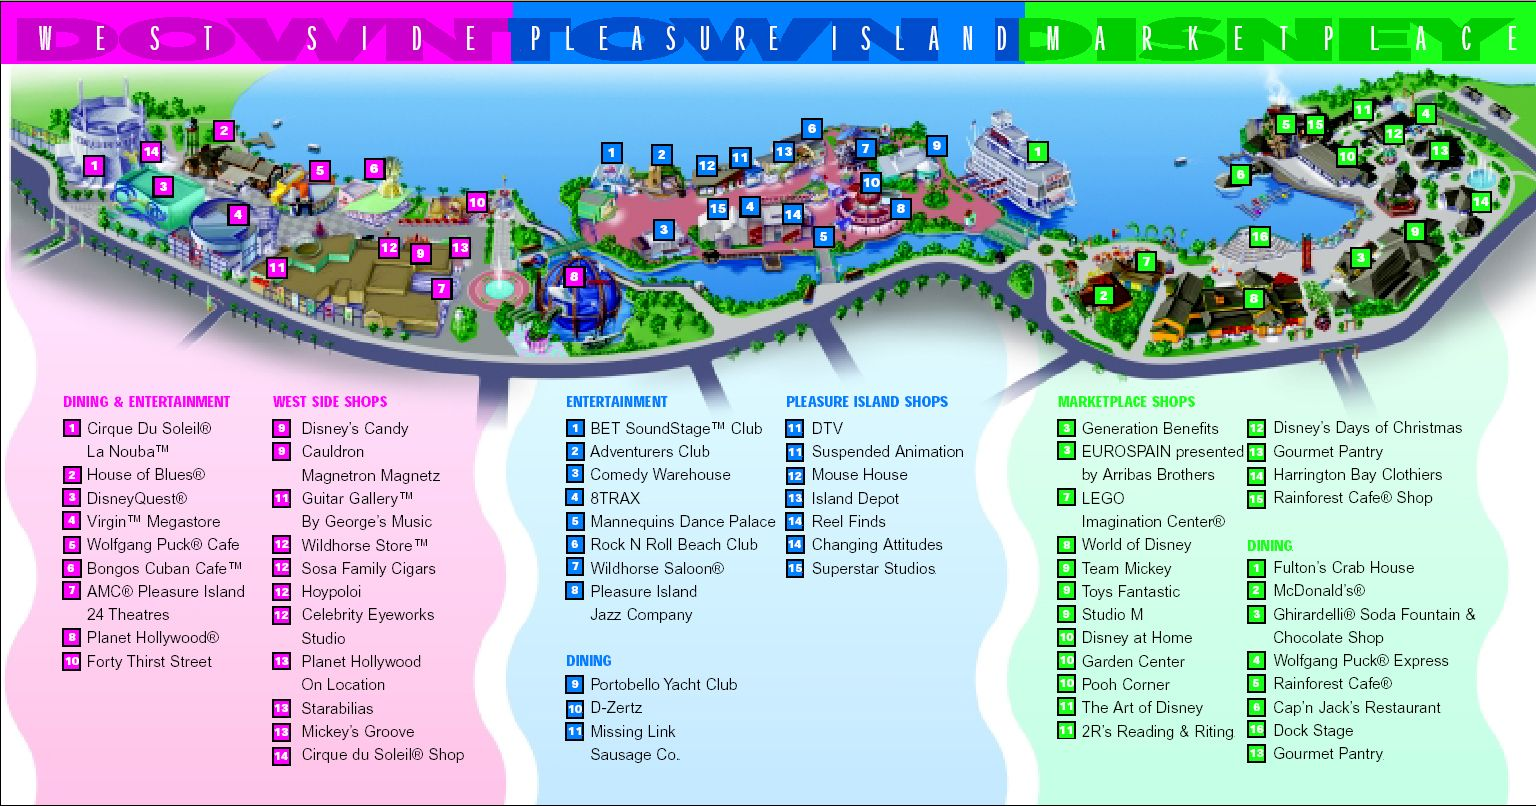 Downtown Disney Orlando Map Map of Downtown Disney and Pleasure Island    Site for discount